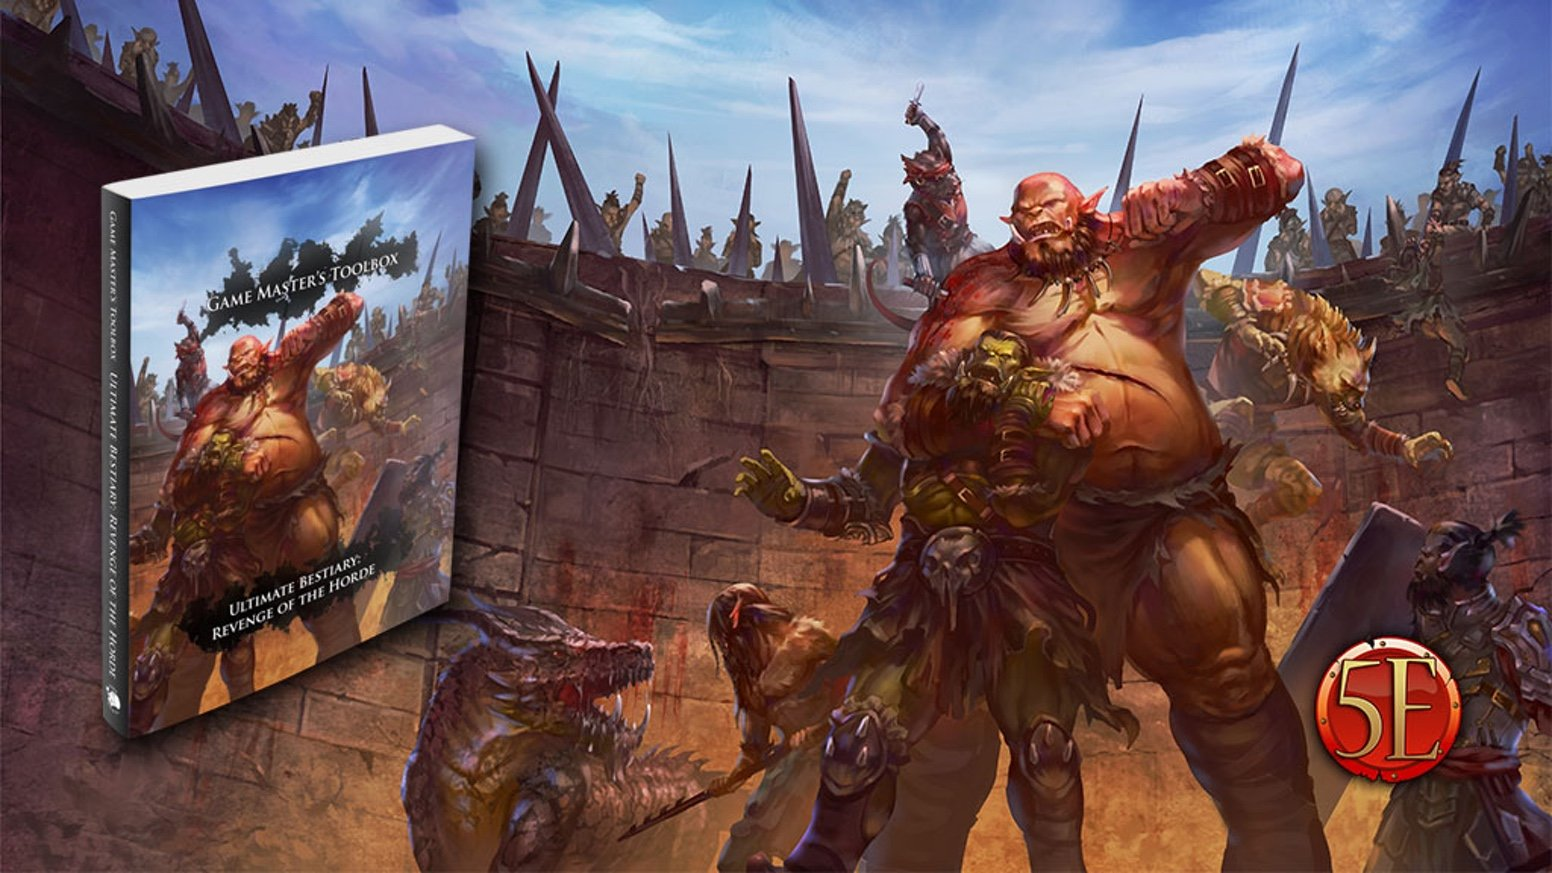 Nord Games unleashes Revenge of the Horde on your D&D game